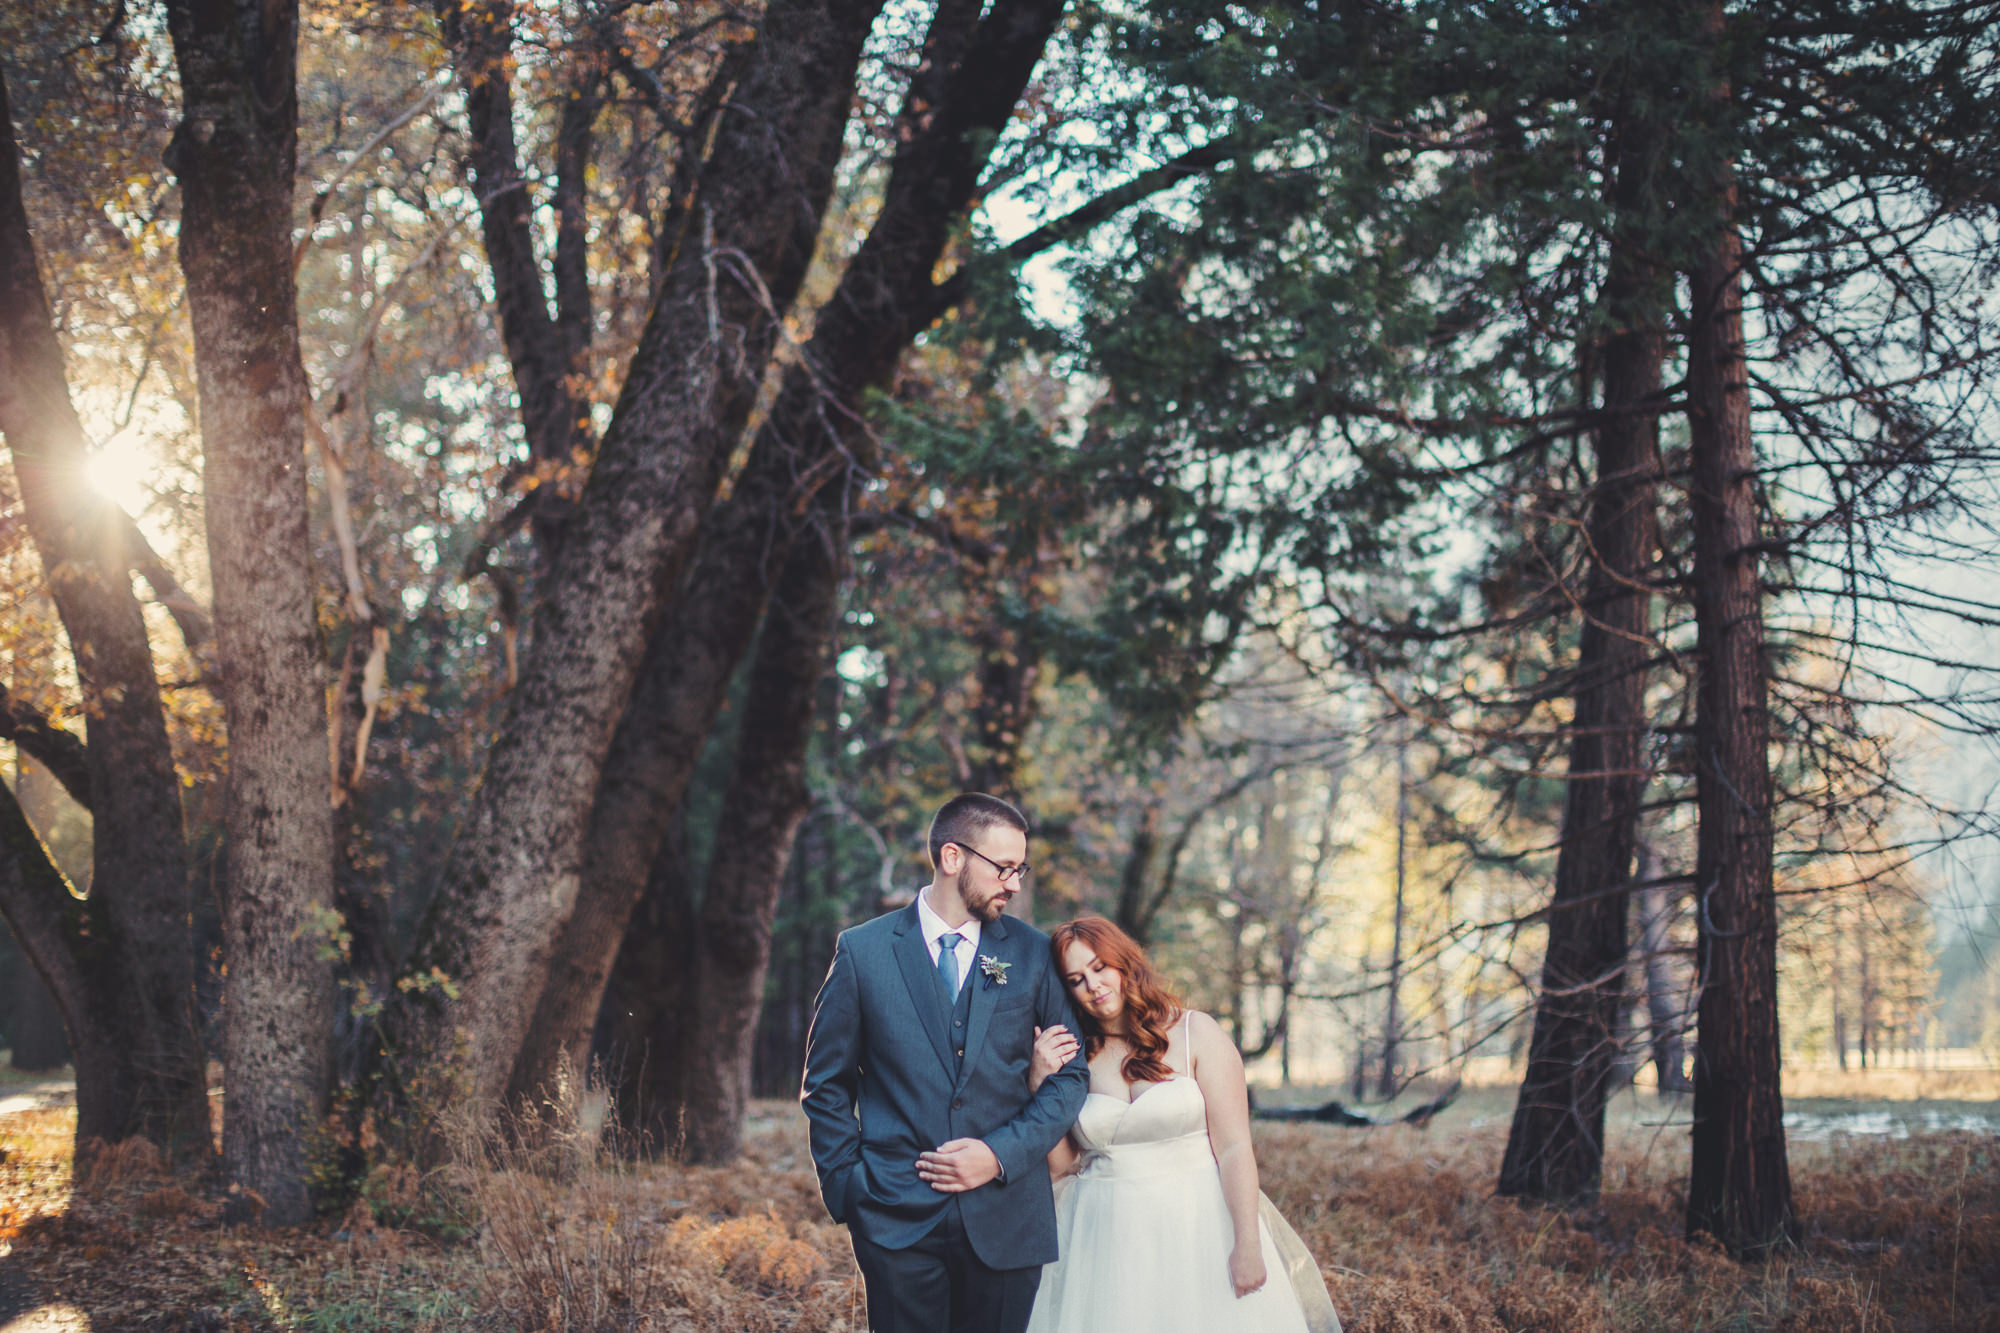 Yosemite wedding ©Anne-Claire Brun 89